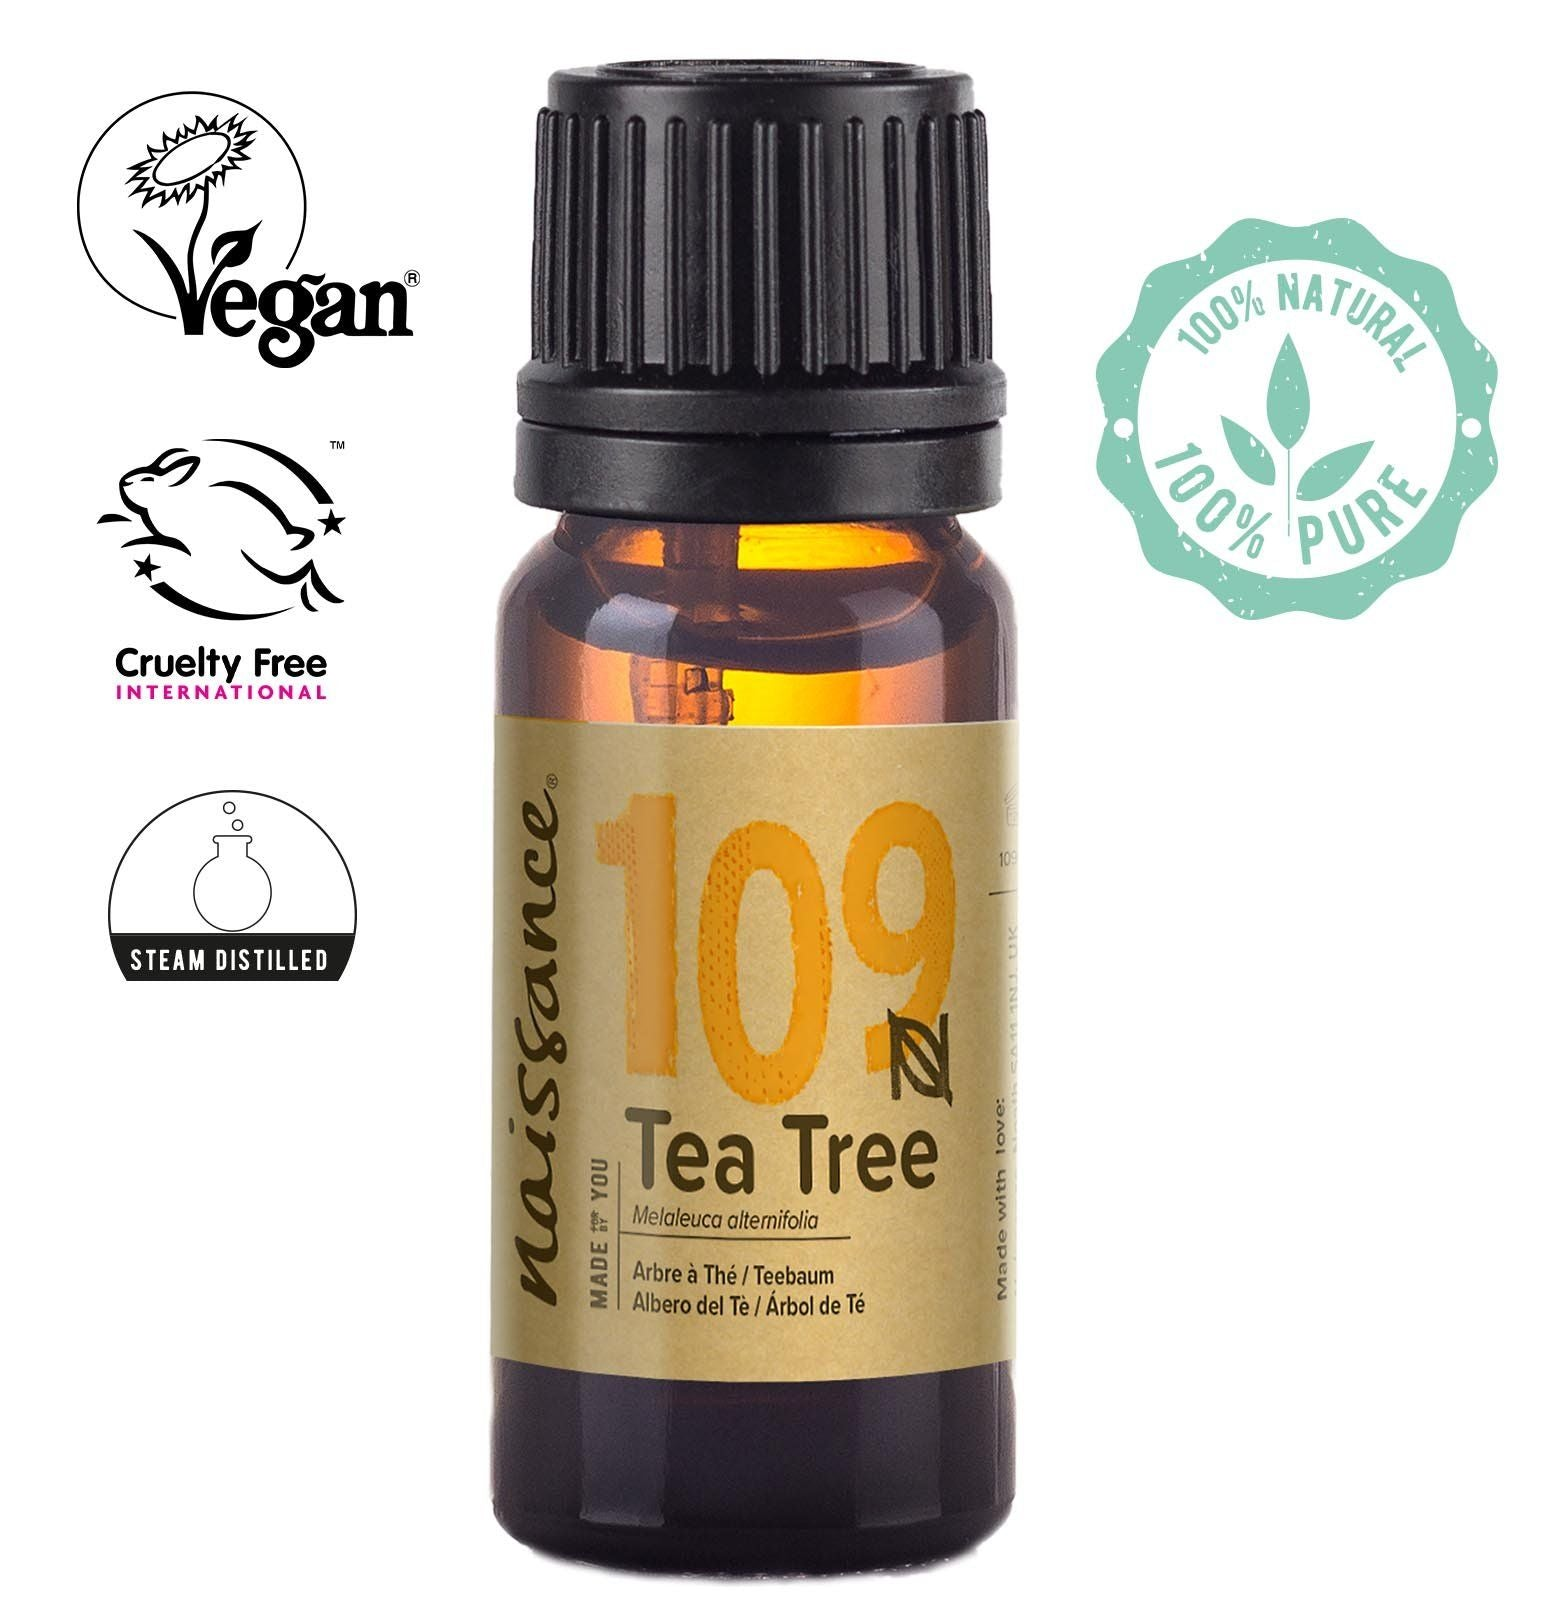 Naissance Steam Distilled Tea Tree Essential Oil